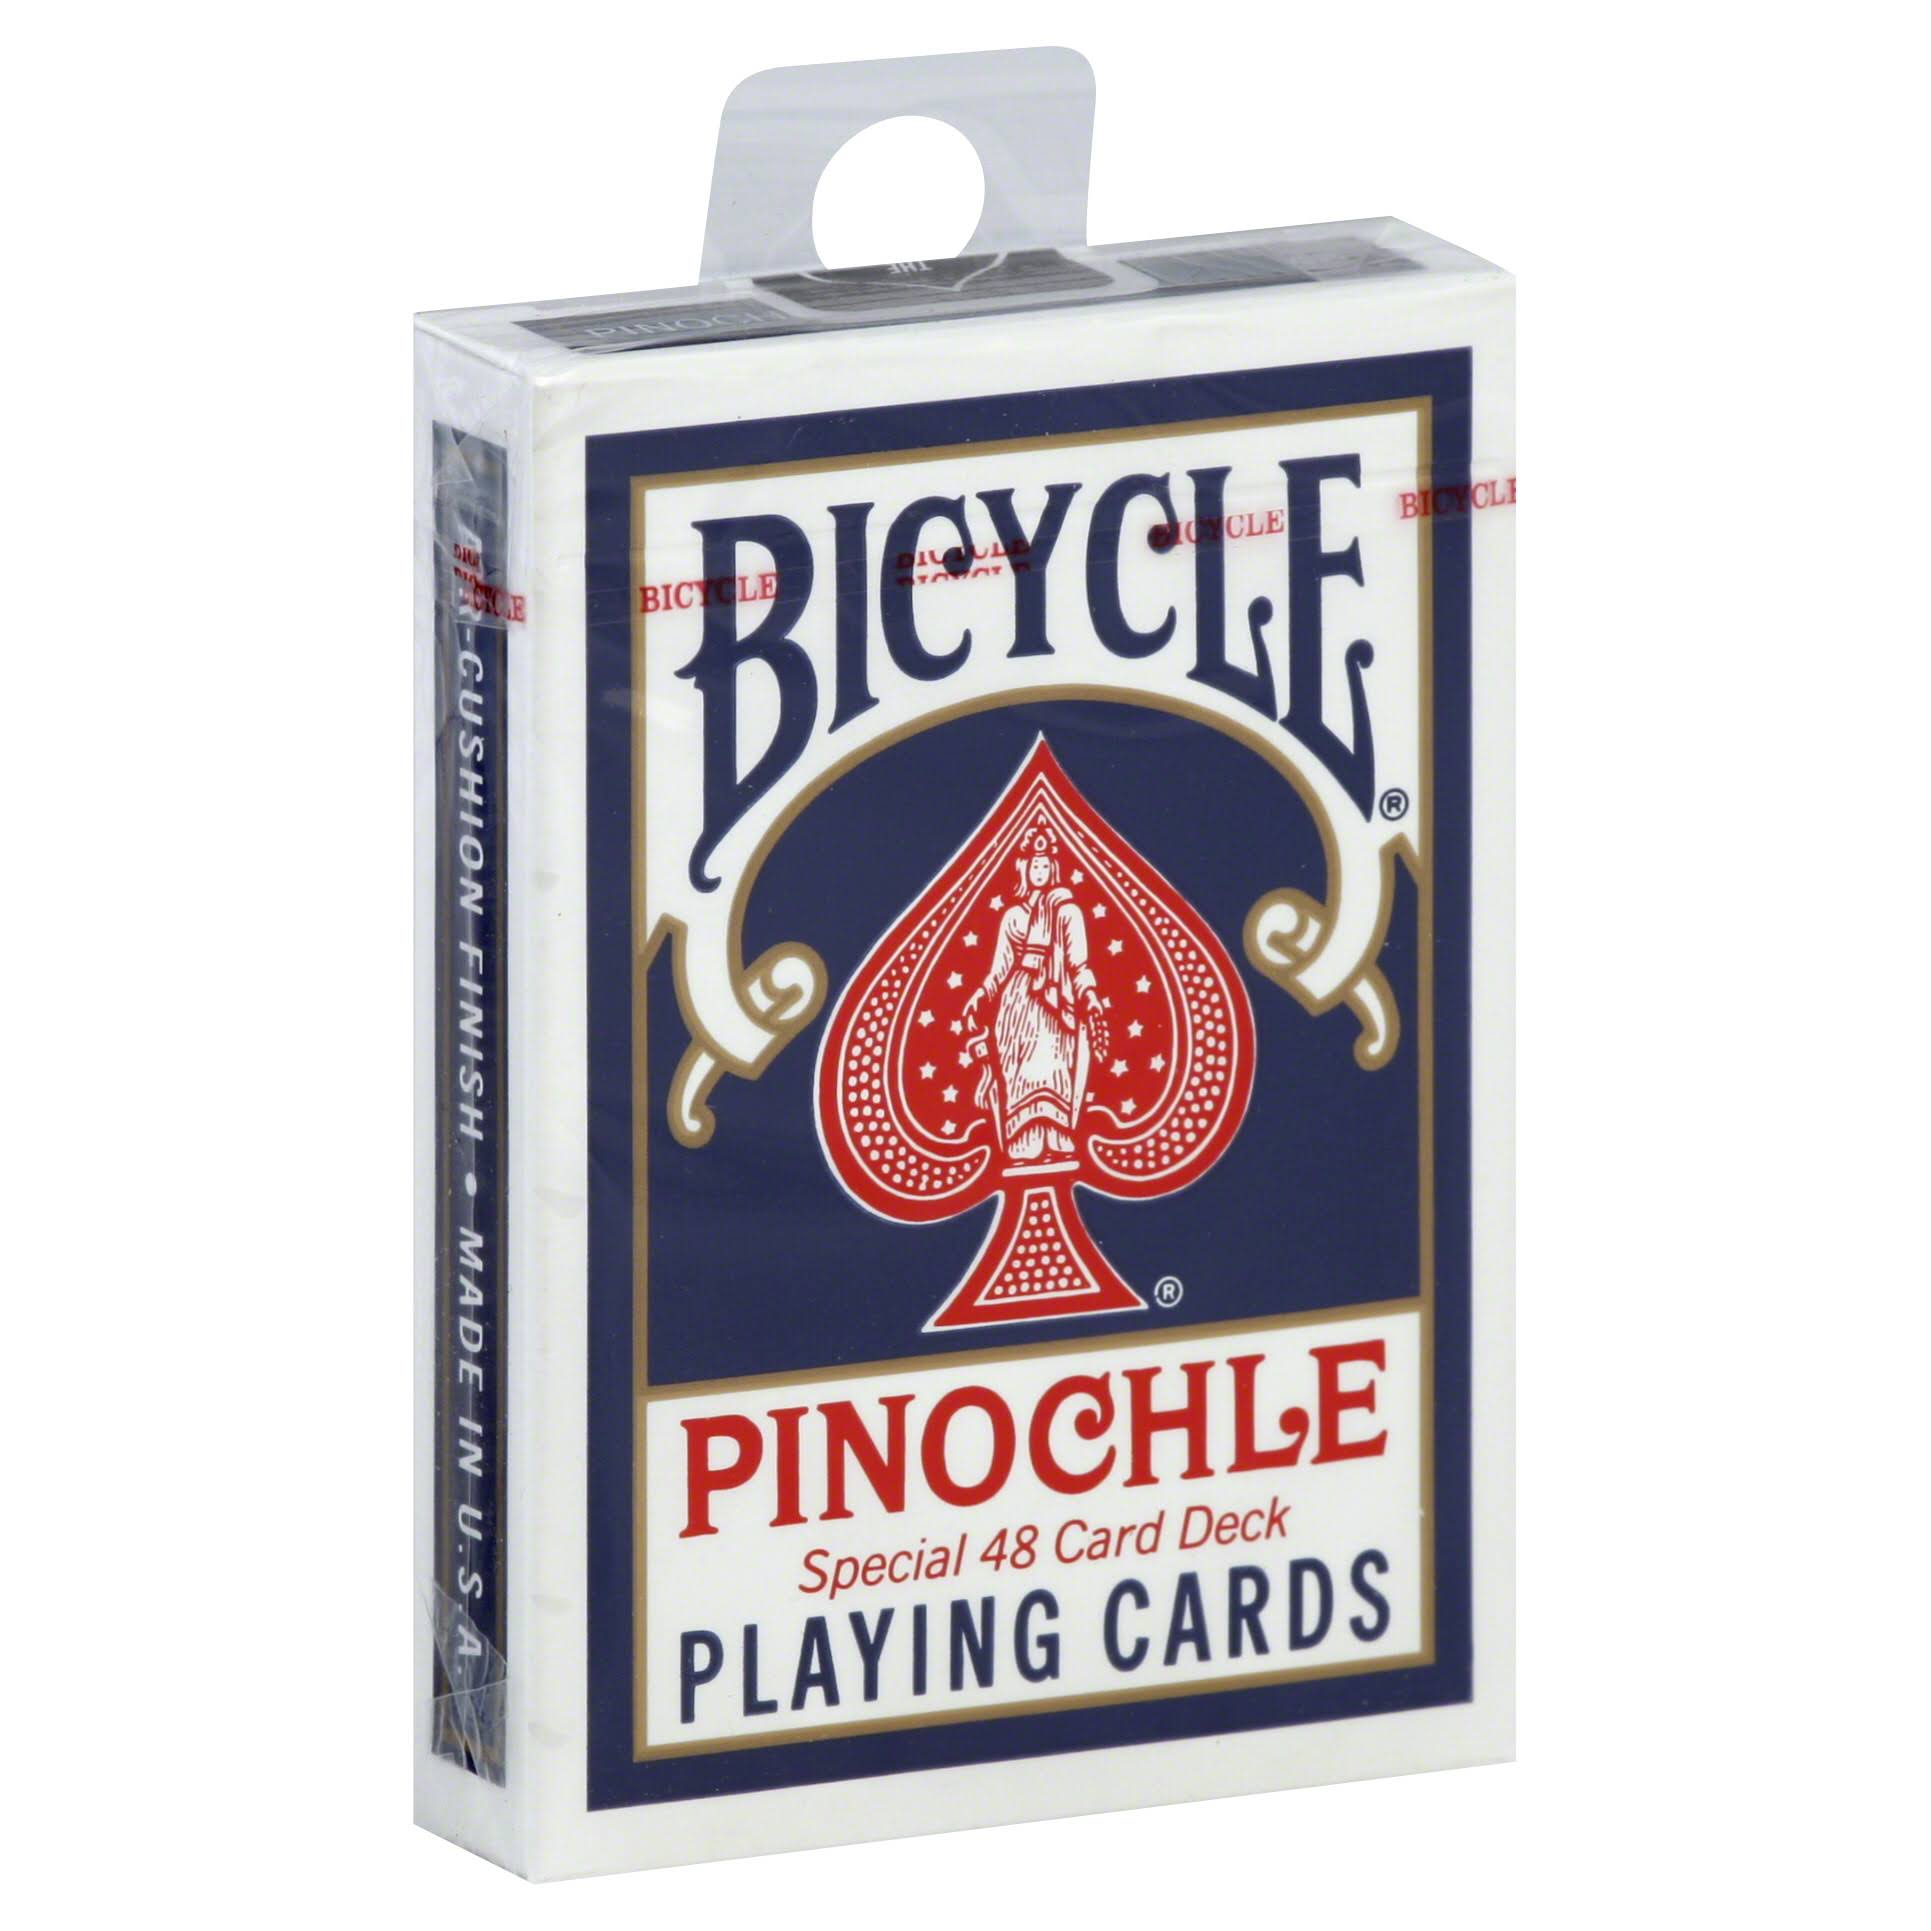 Bicycle Pinochle Special Deck Playing Cards - 48 Cards